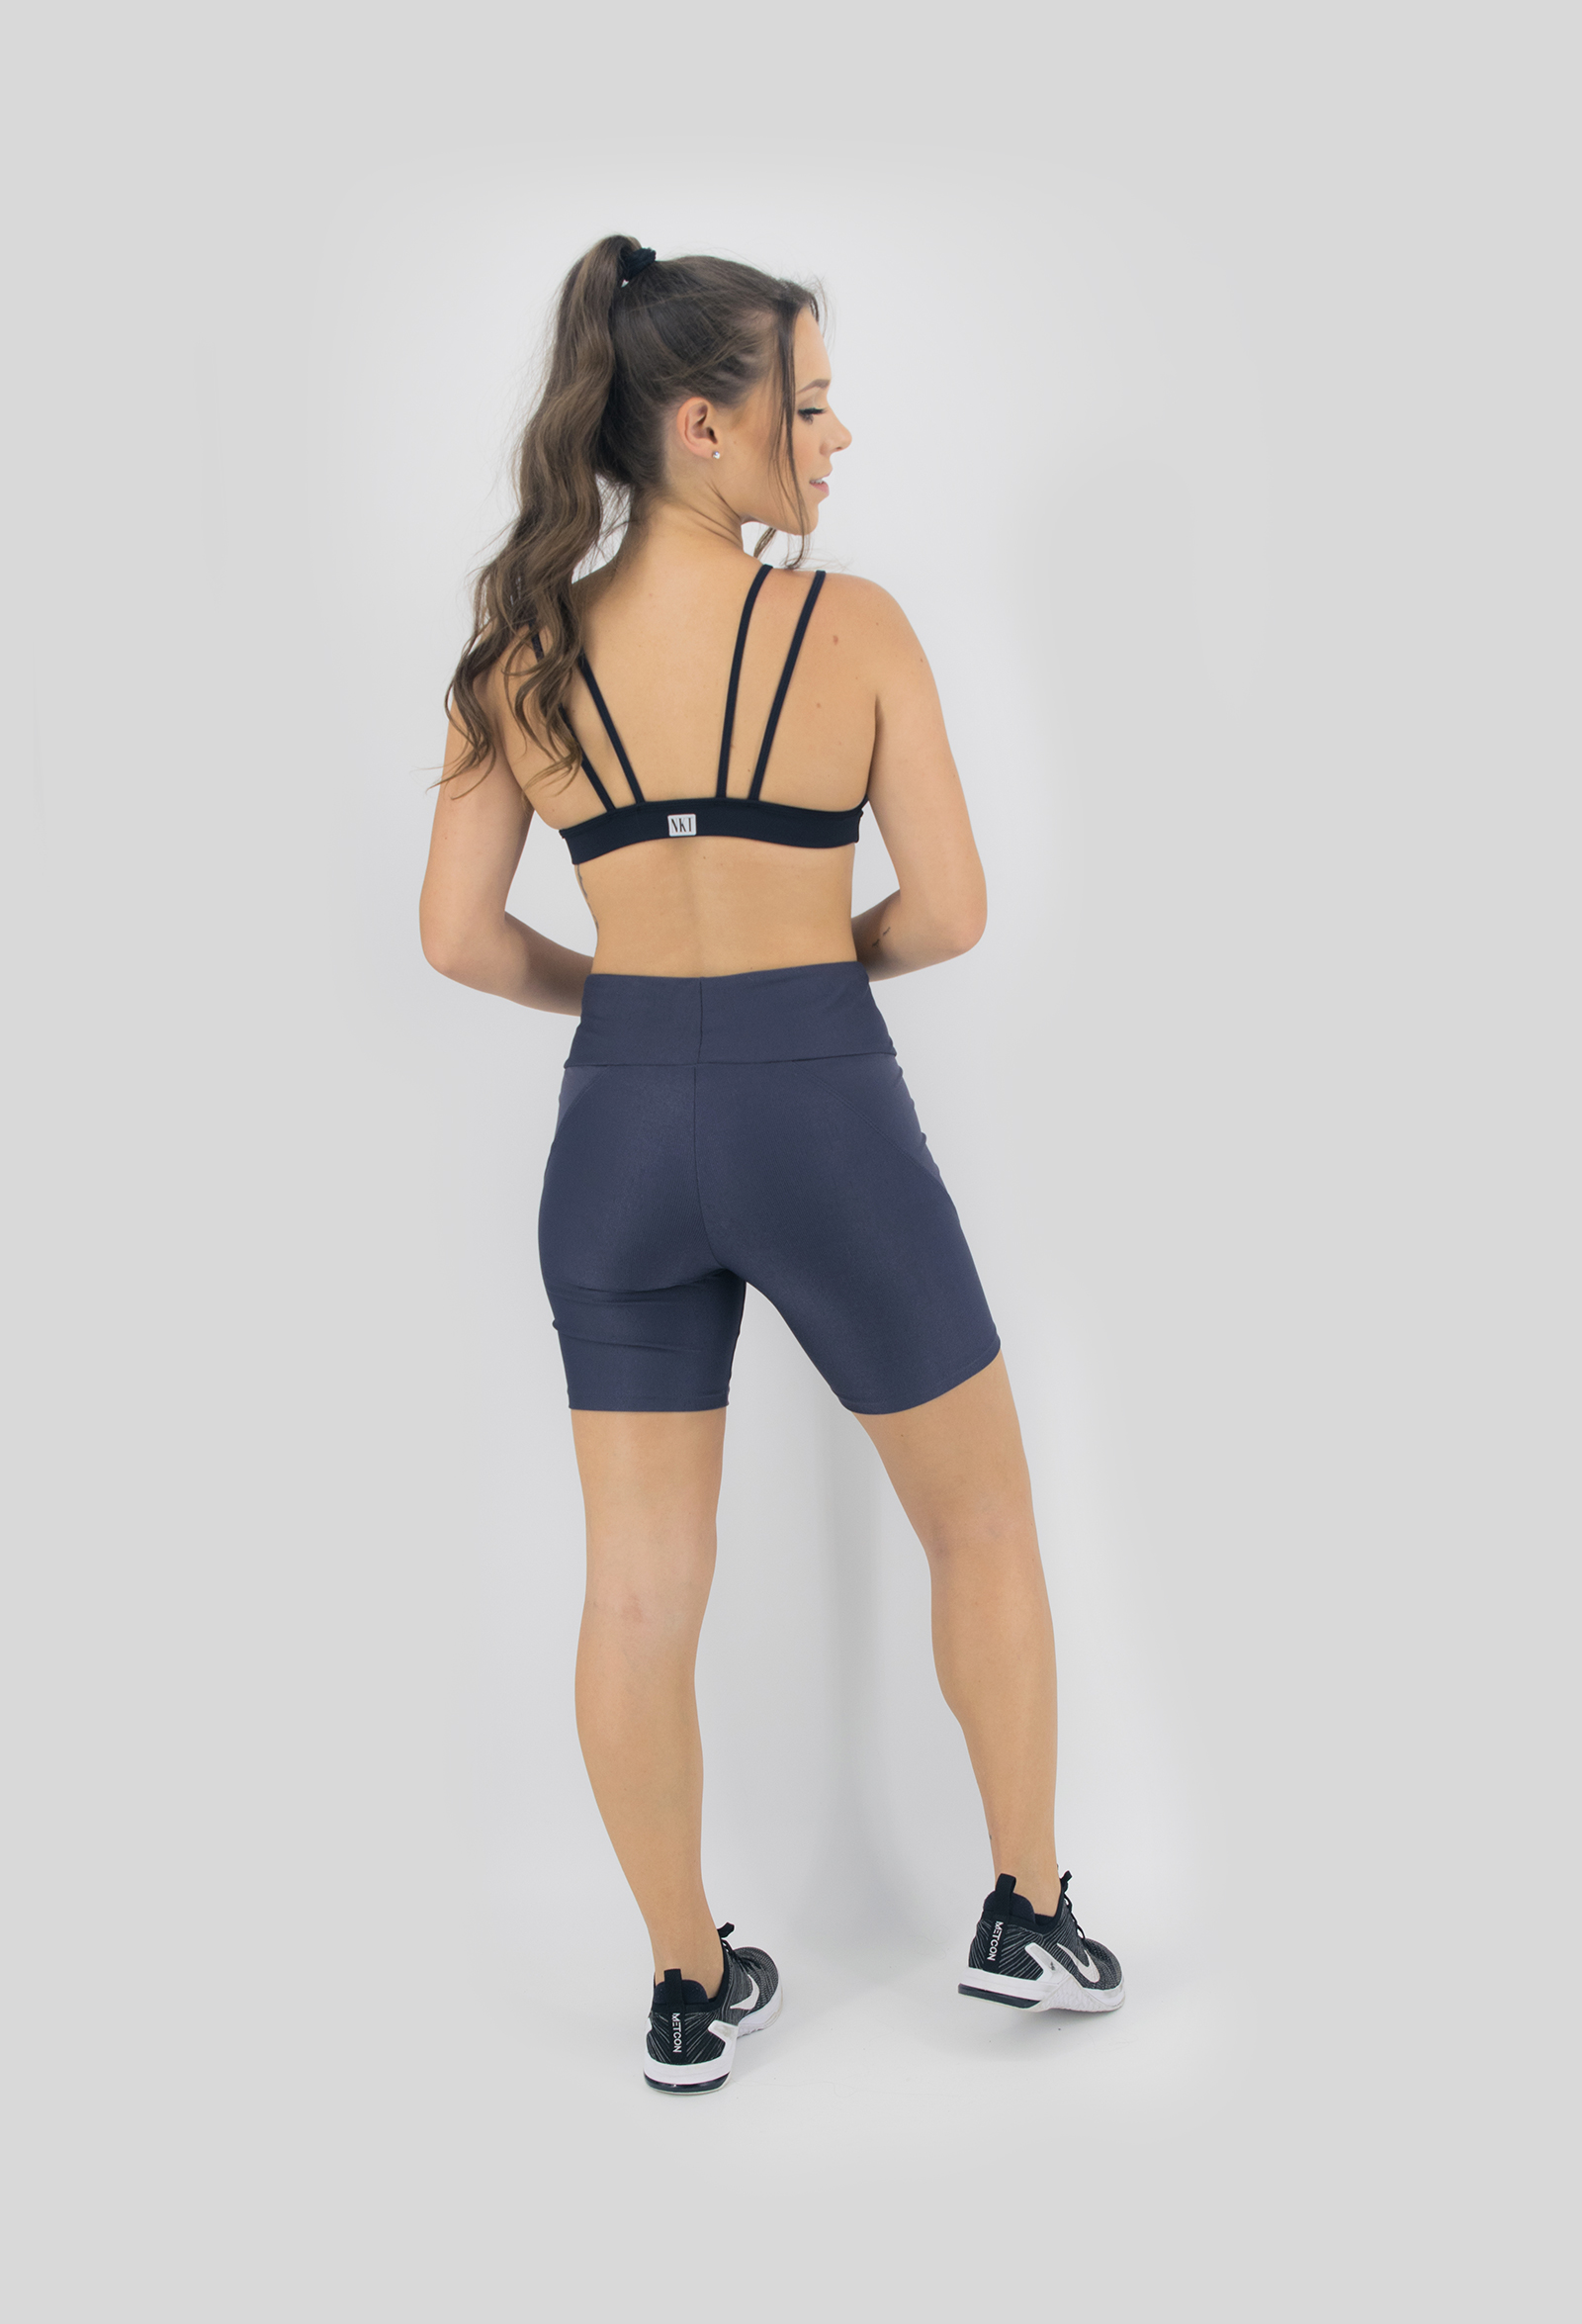 Top Tiras Preto, Coleção Move Your Body - NKT Fitwear Moda Fitness